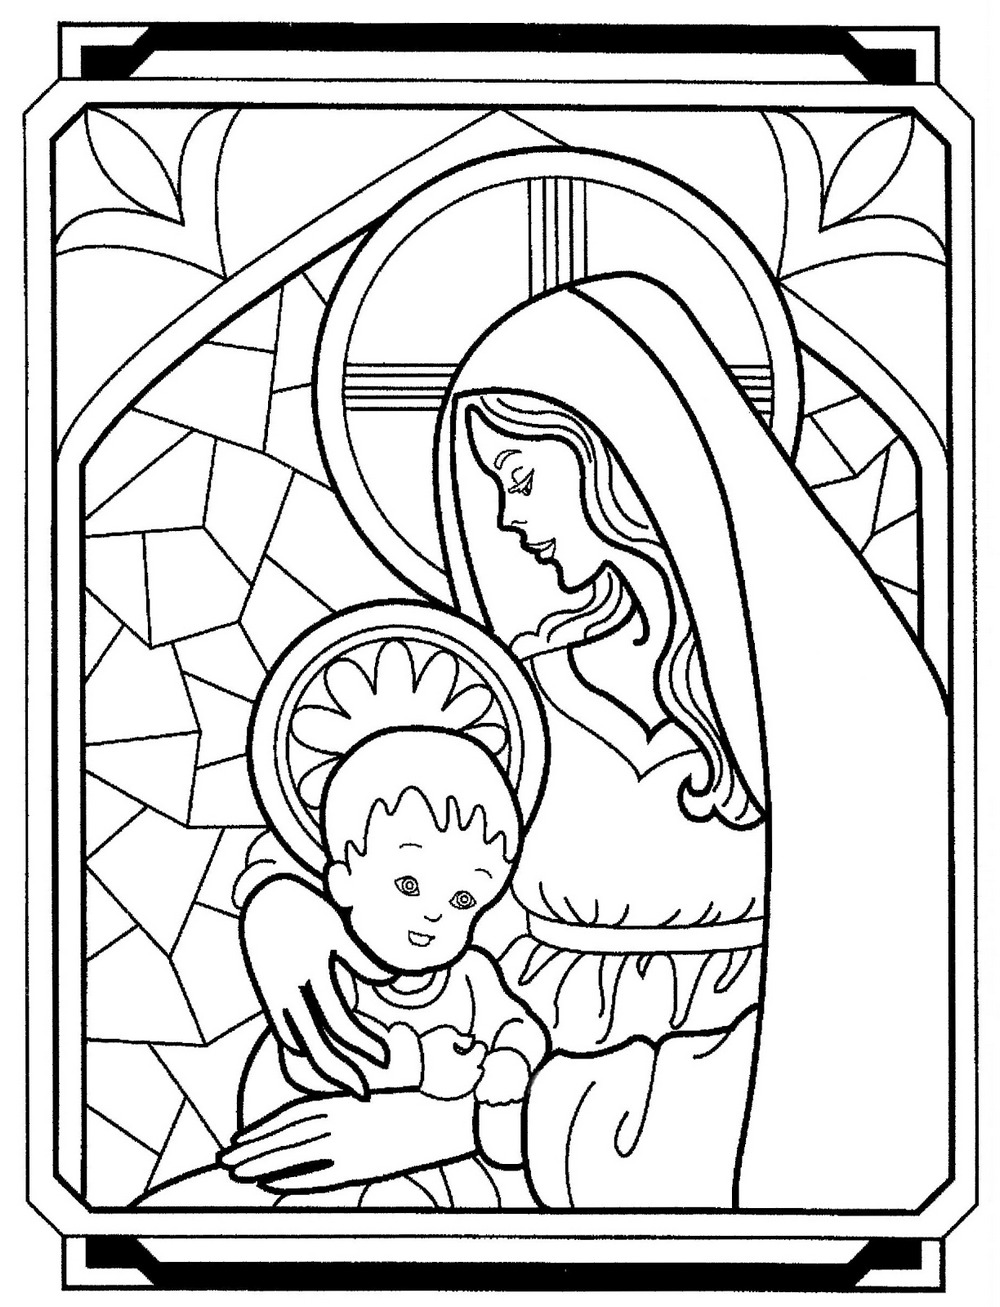 Printable virgin mary coloring pages ~ mother-mary-coloring-books